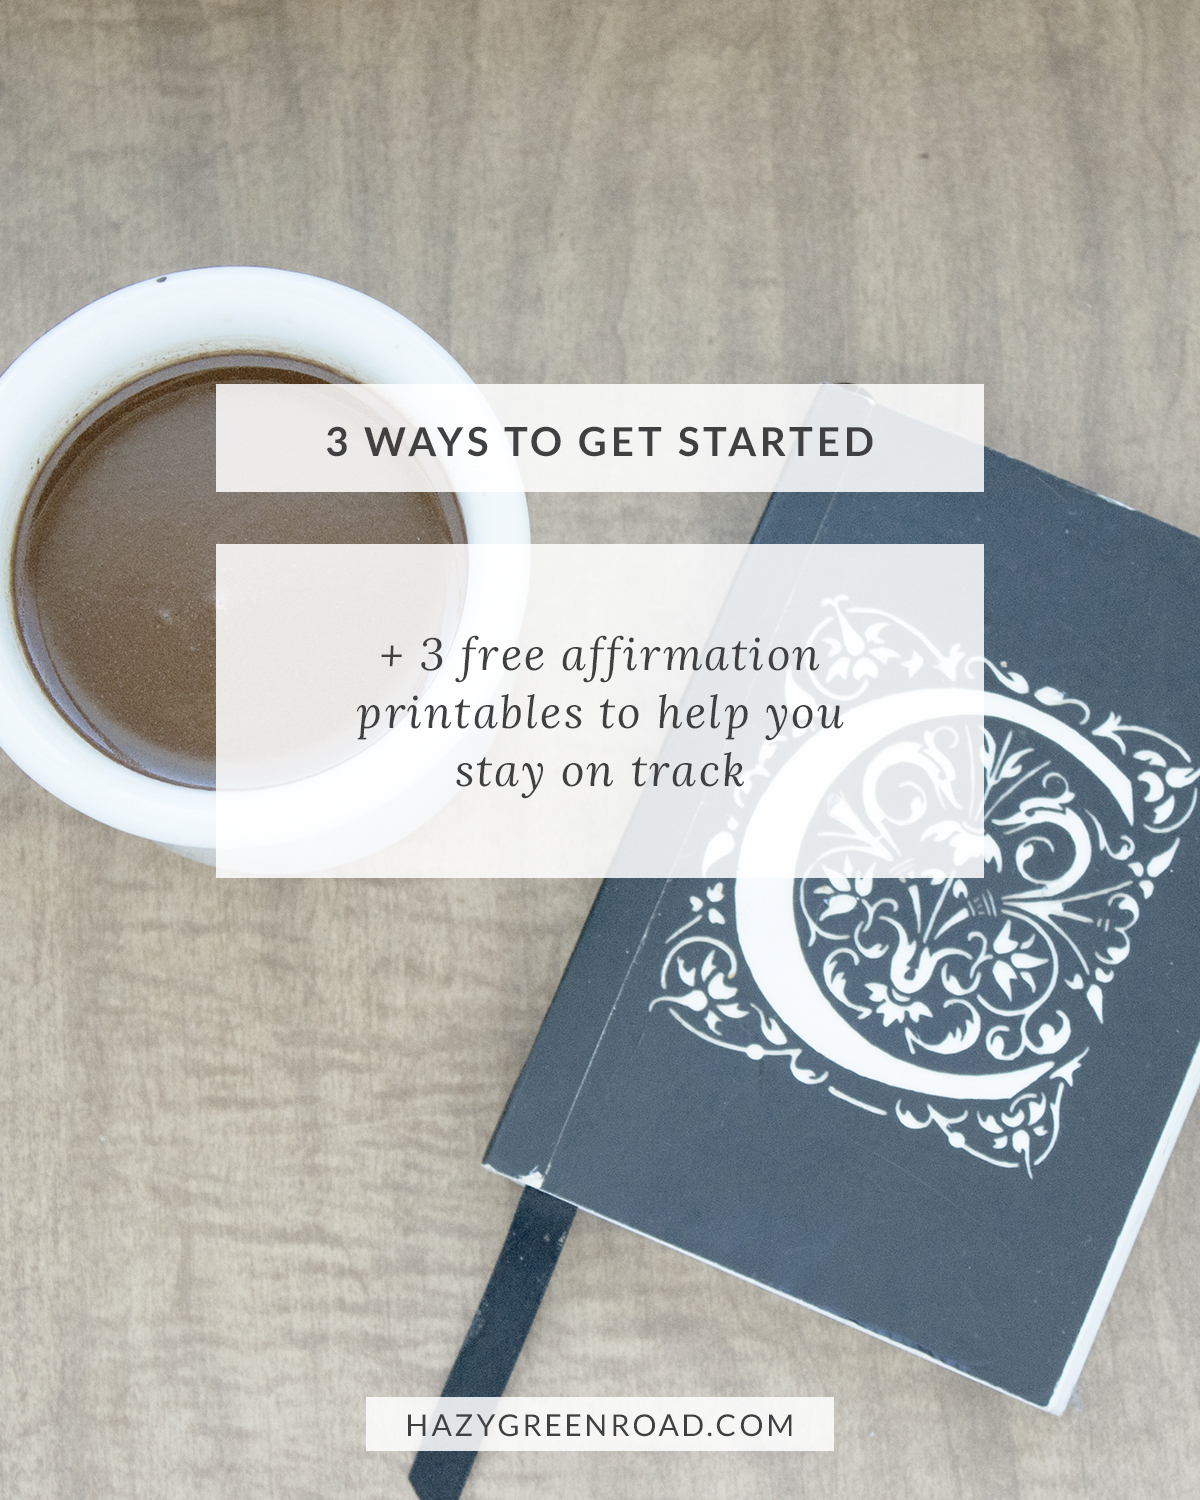 3 Ways to Get Started + 3 Free Affirmation Printables - Hazy Green Road